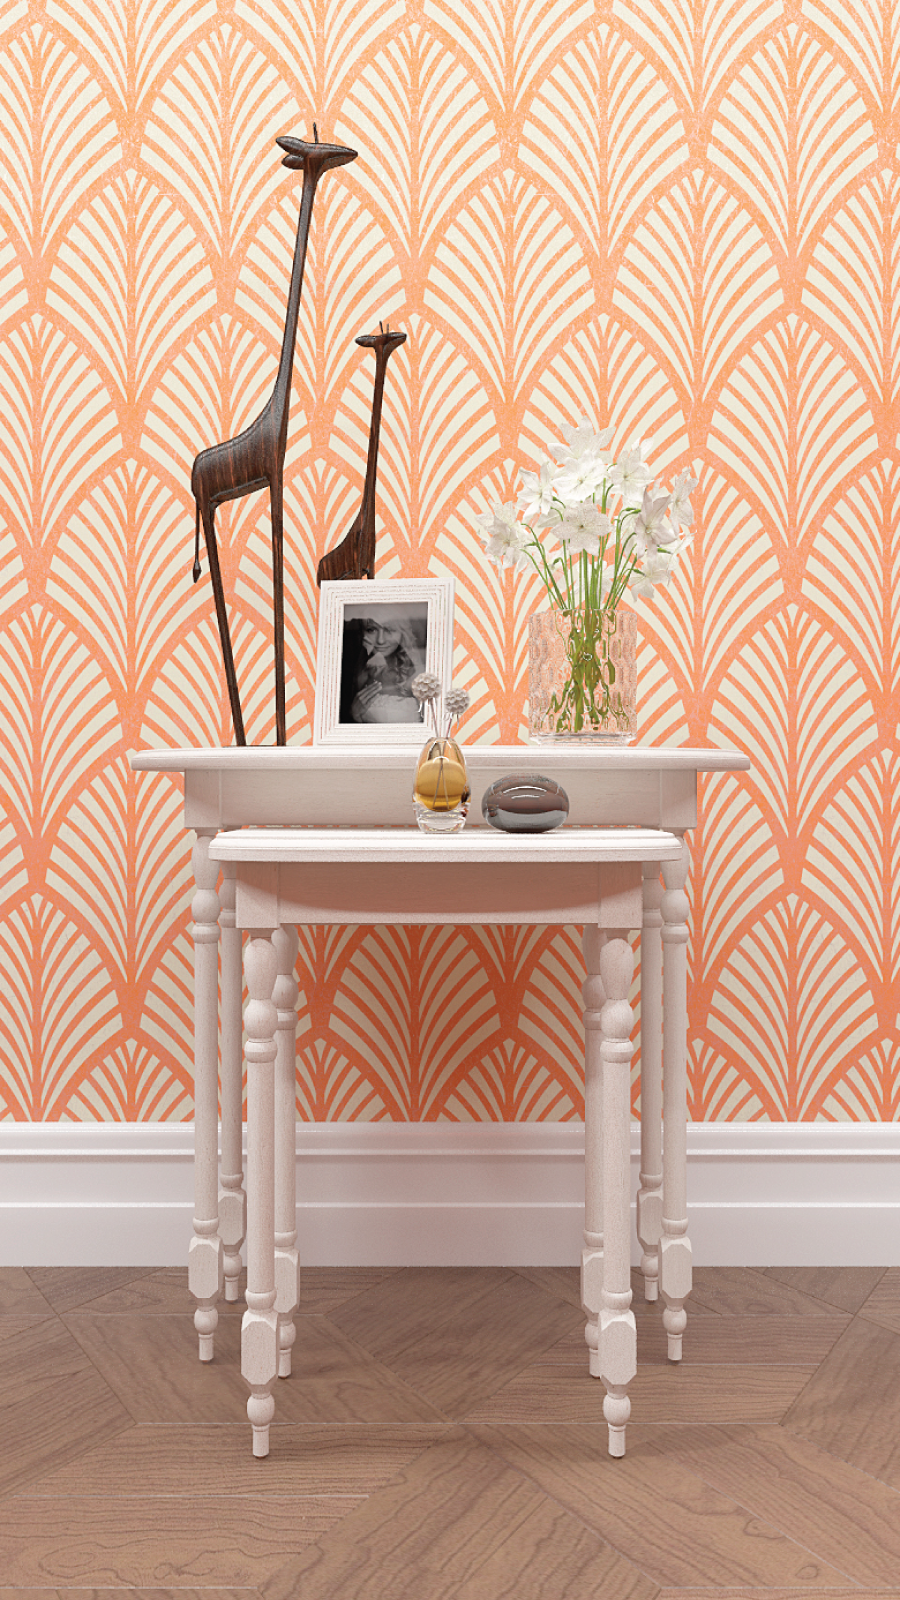 Palm leaf allover wall stencil large wall stencils with the help of pattern wall stencils you can make the interior of your home look more saturated and